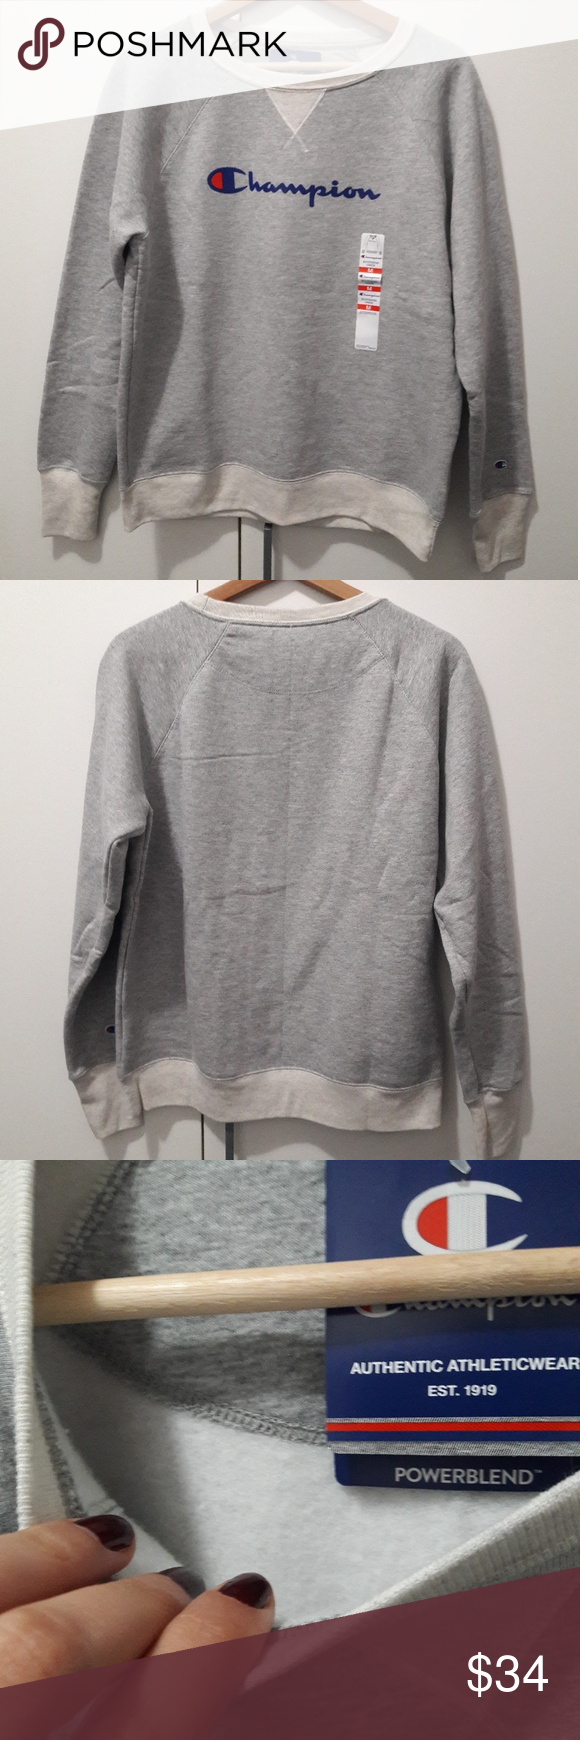 Champion Fleece Boyfriend Crew Pullover Brand New With Tags Champion Boyfriend Crew Pullover Super Soft And Warm Not Too Bul Pullover Clothes Design Sweaters [ 1740 x 580 Pixel ]